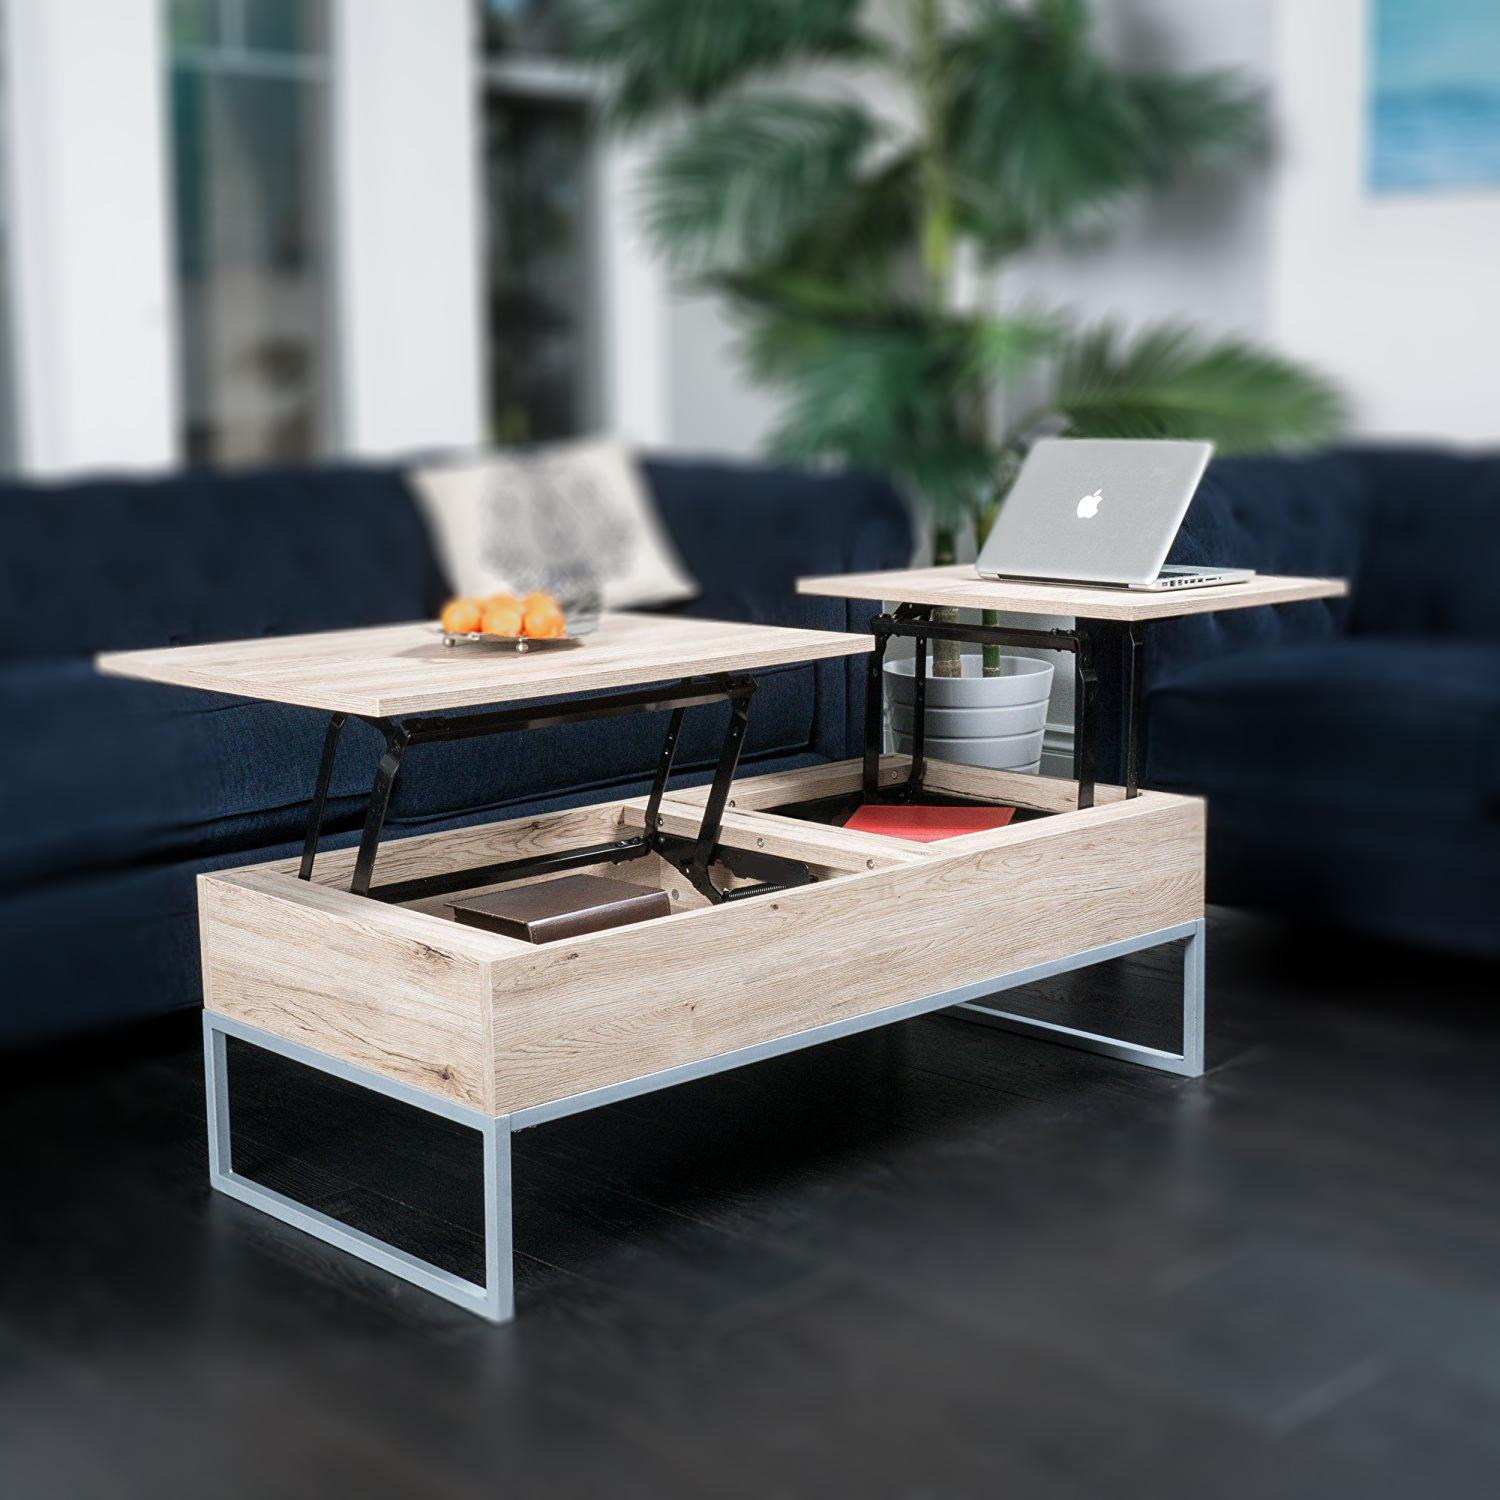 Zimtown Wood Lift Up Top Coffee Table with Hidden Compartment End Rectangle Table Storage Space Living Room Furniture